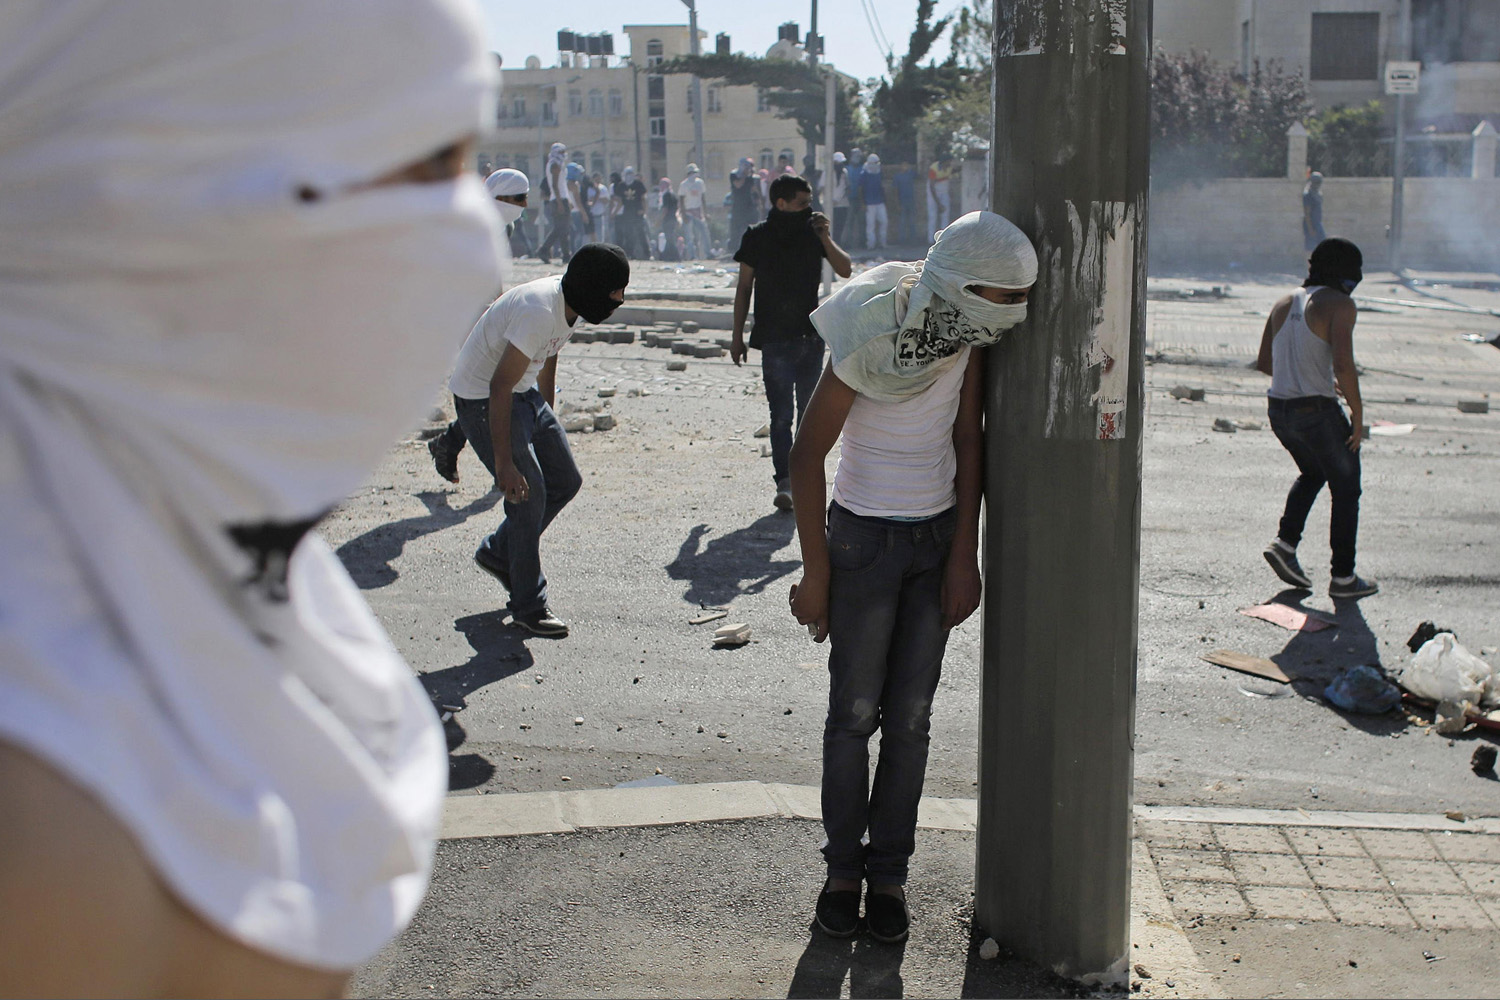 Jul. 3, 2014.  A Palestinian stone-thrower takes cover behind a street pole during clashes with Israeli police in Shuafat, an Arab suburb of Jerusalem.